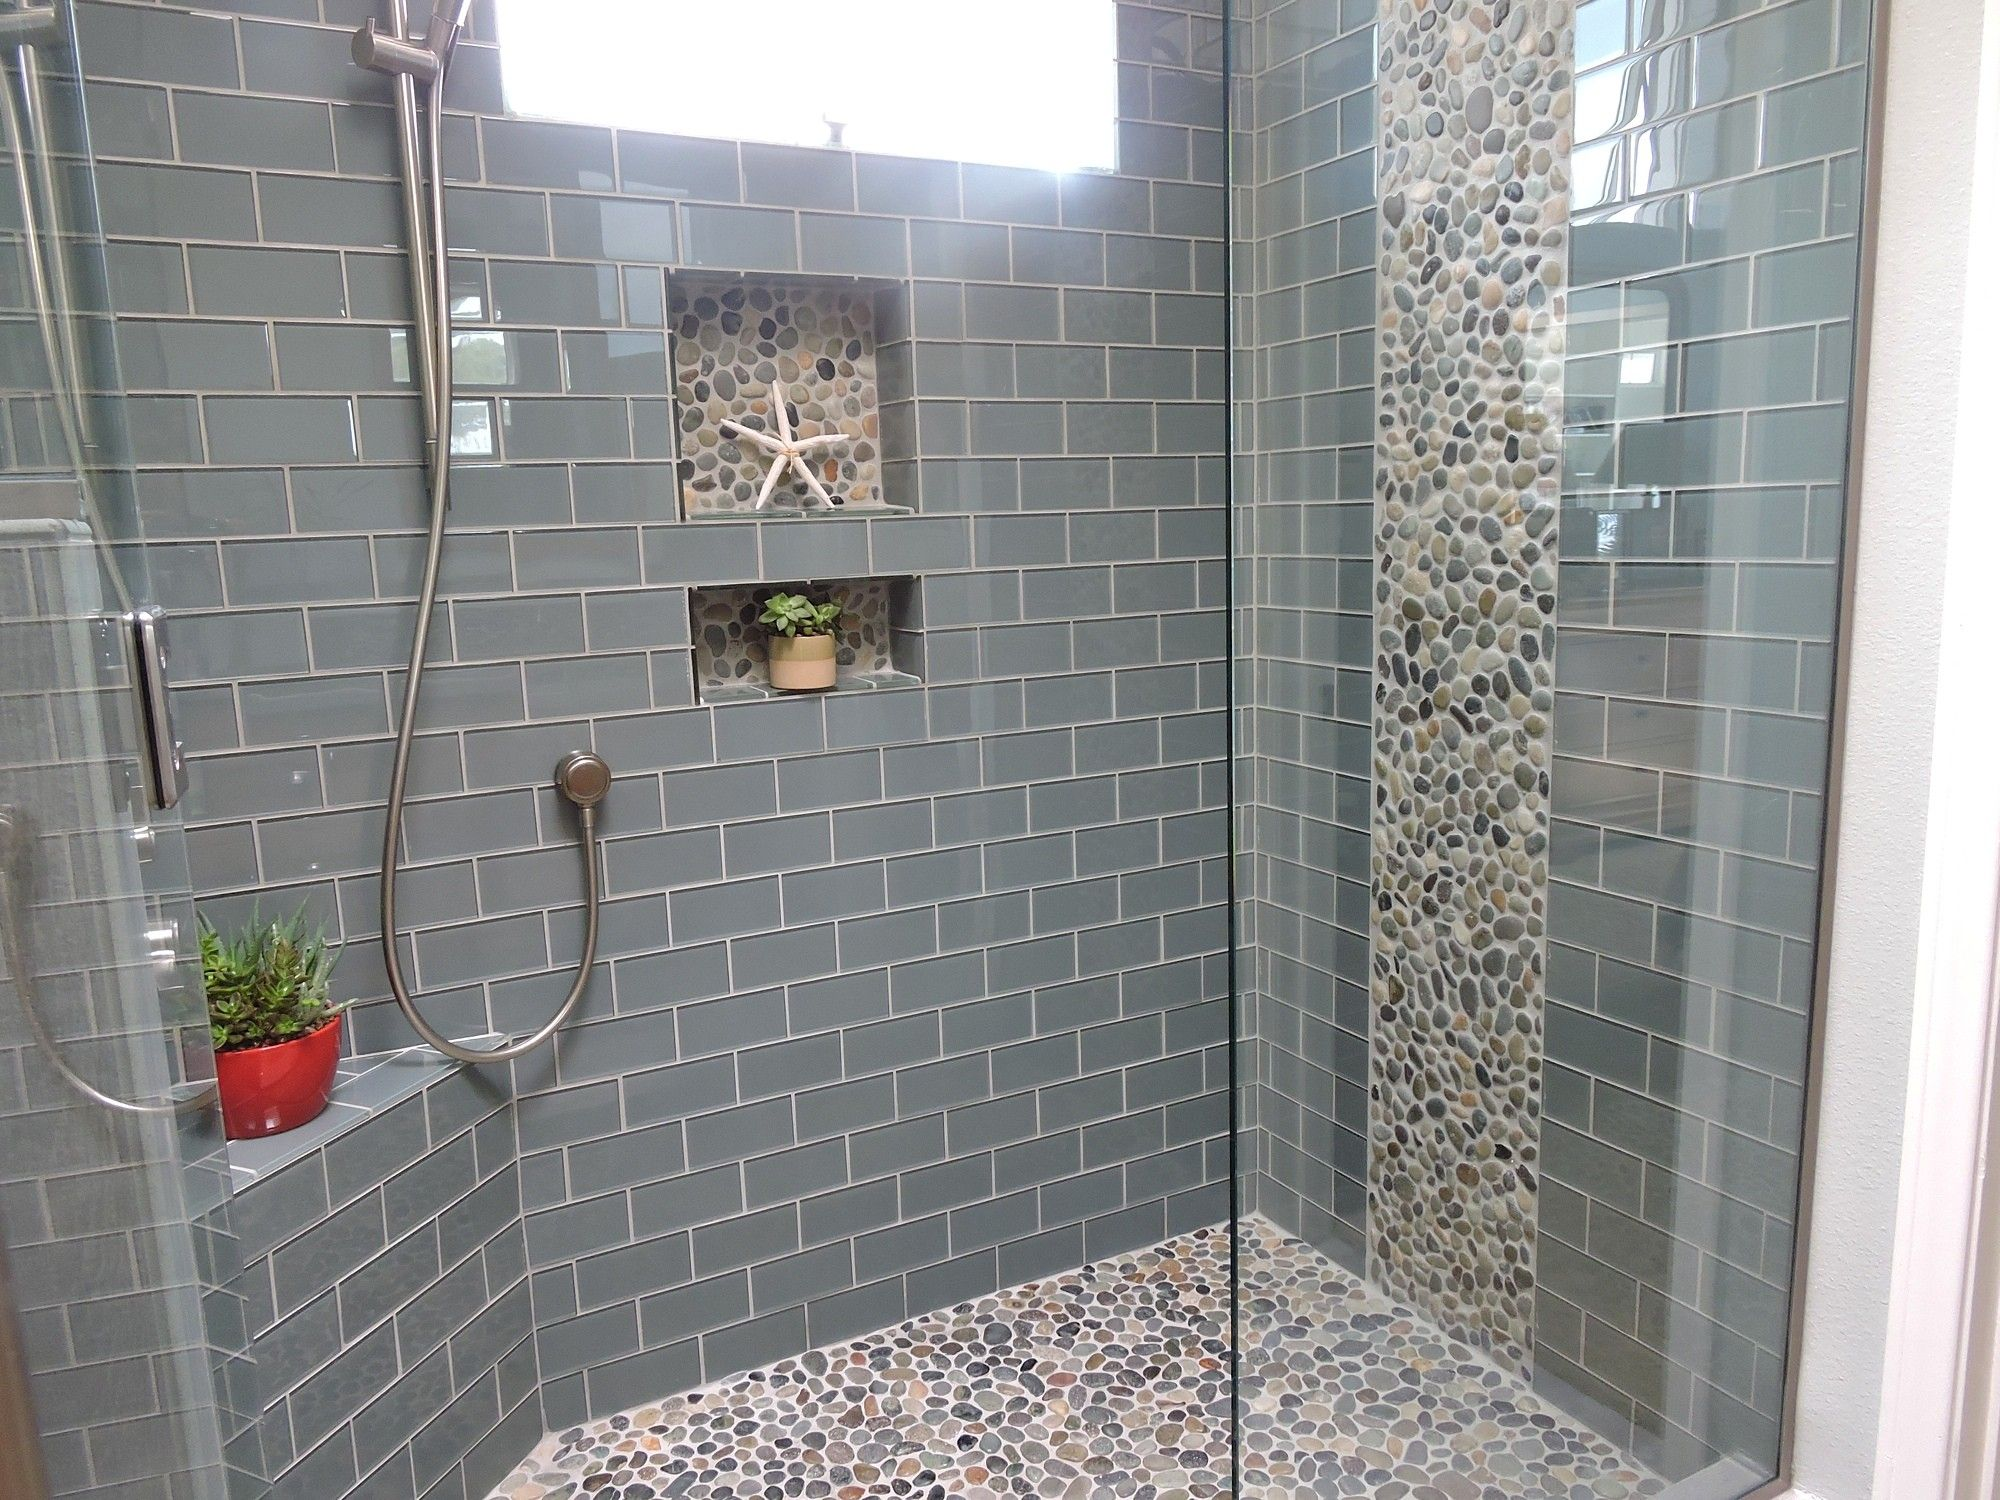 Glass Tile Bathroom Designs Unique Interiorgrey Wall Tile Connectedstainless Steel Shower And Inspiration Design